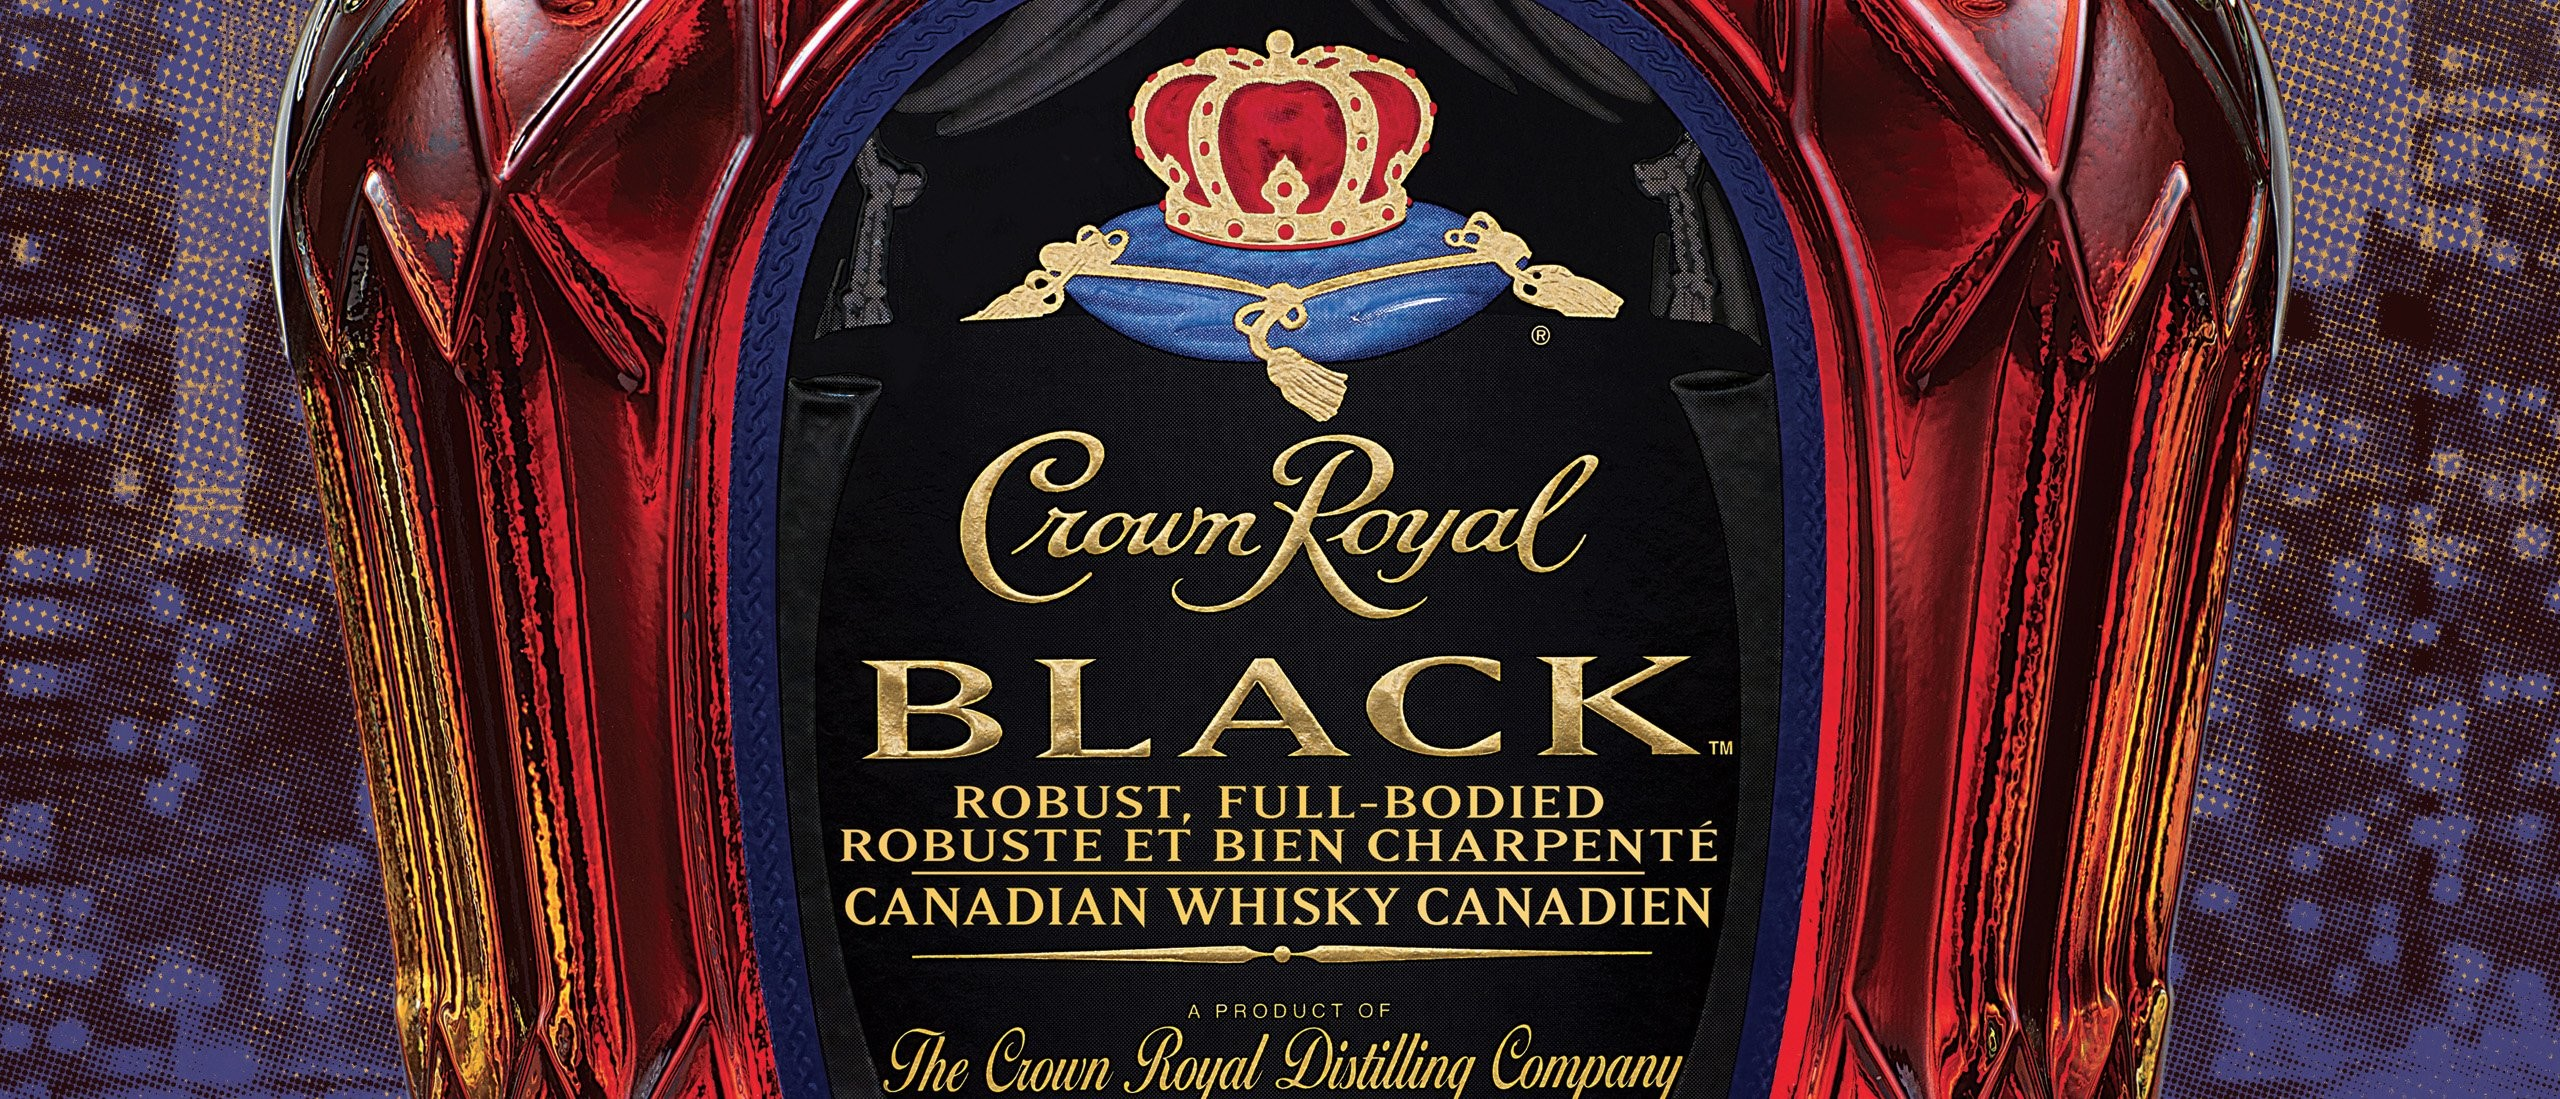 Crown Royal Wallpaper 55 Images